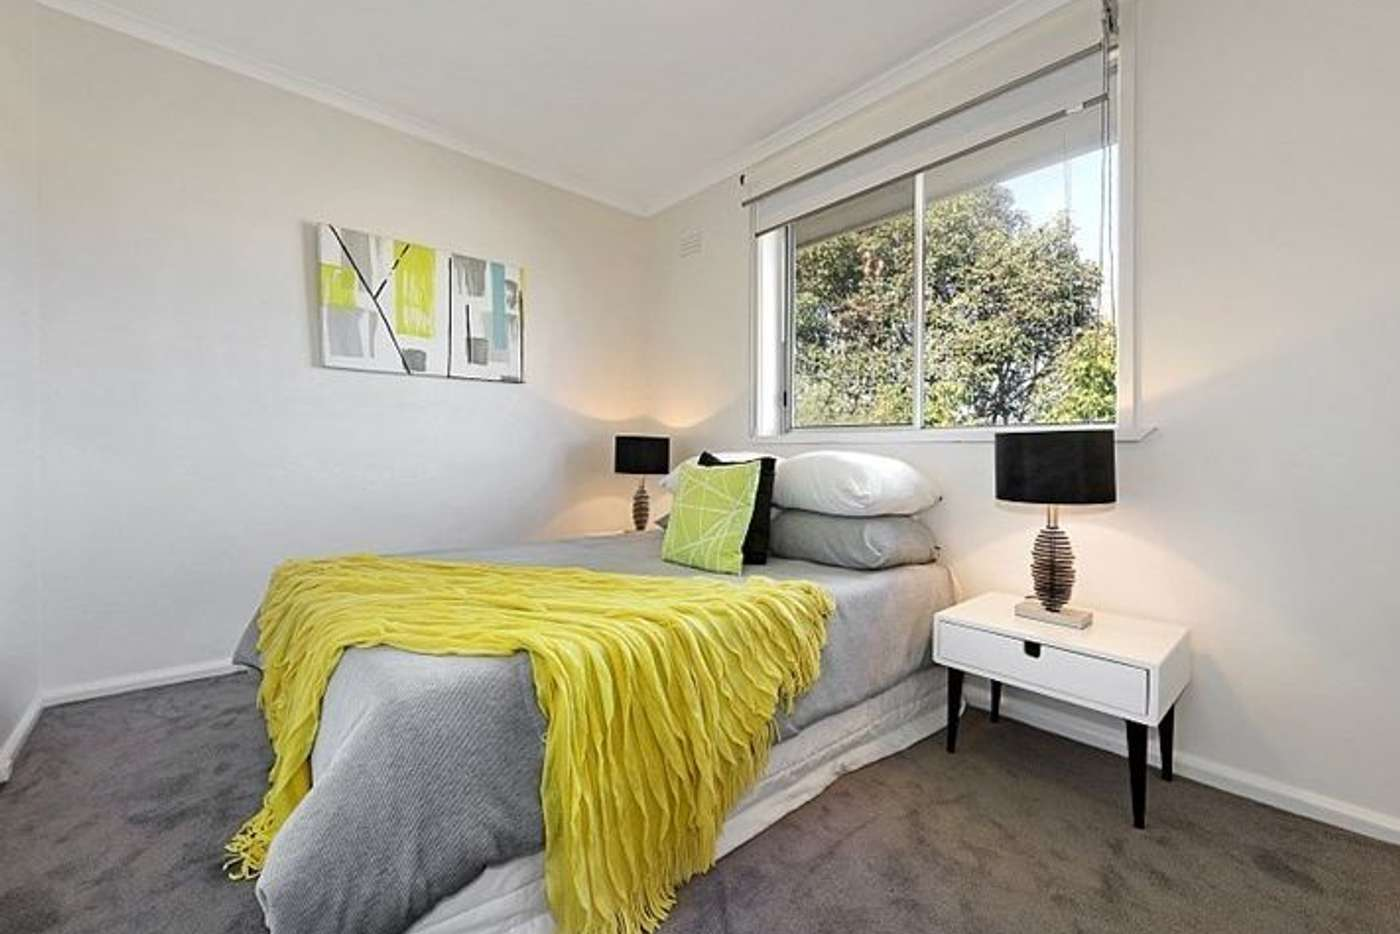 Fifth view of Homely apartment listing, 11/26 Gladstone Avenue, Armadale VIC 3143